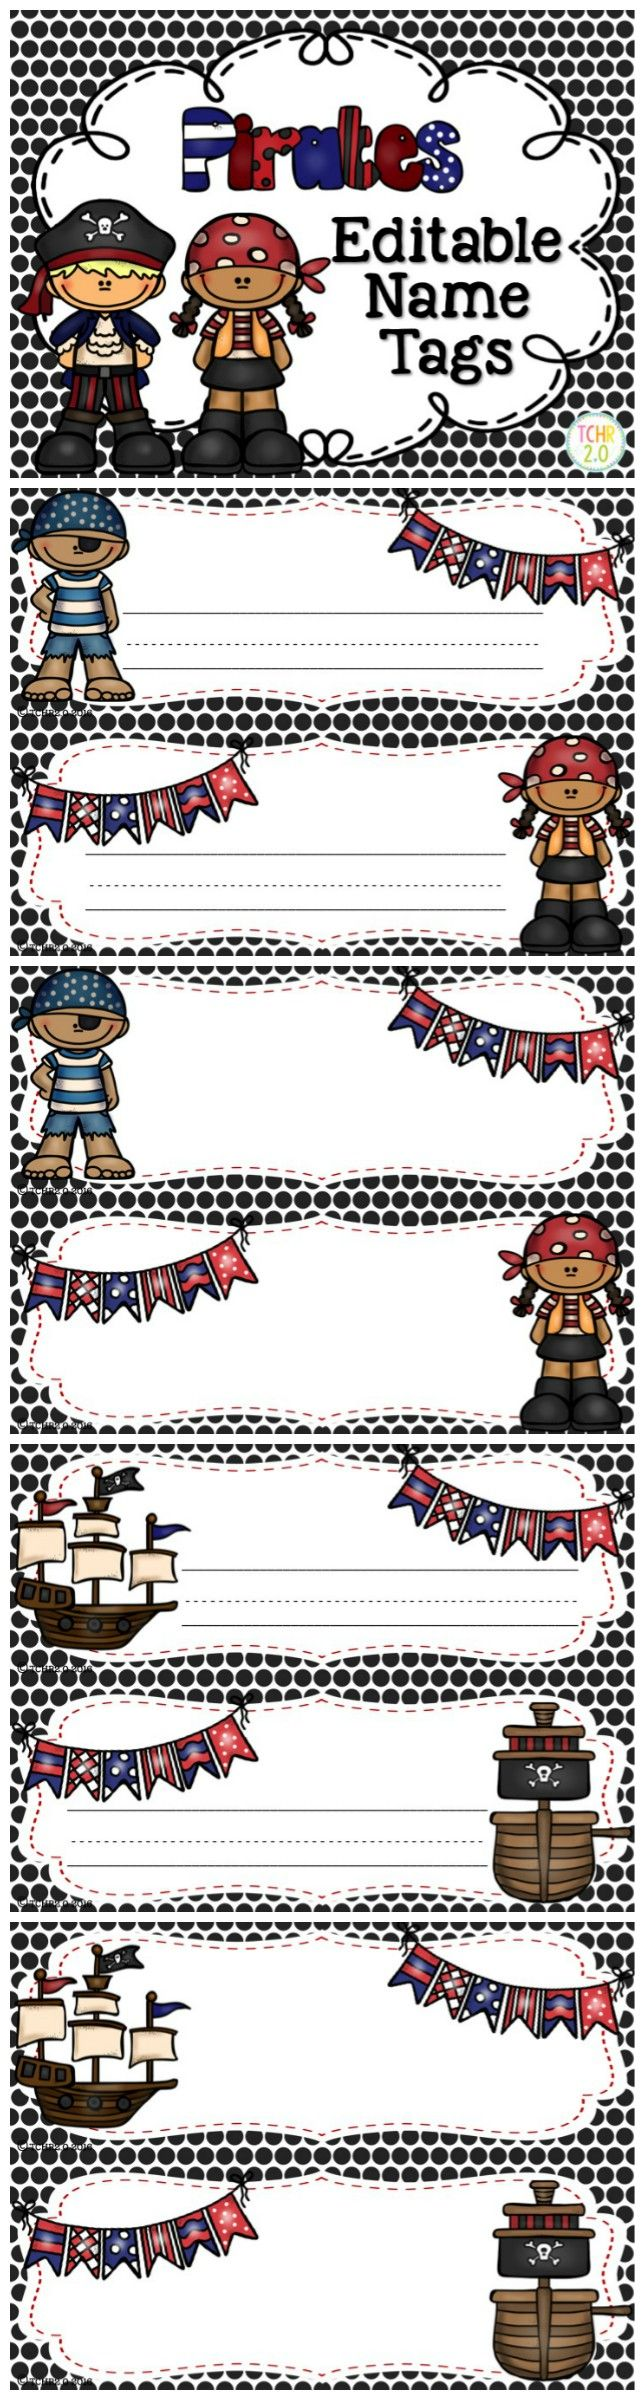 This is a set of editable desk plates with a pirate theme. Just insert a text box and type your kids' names or print and handwrite your students' names. Great for back to school!